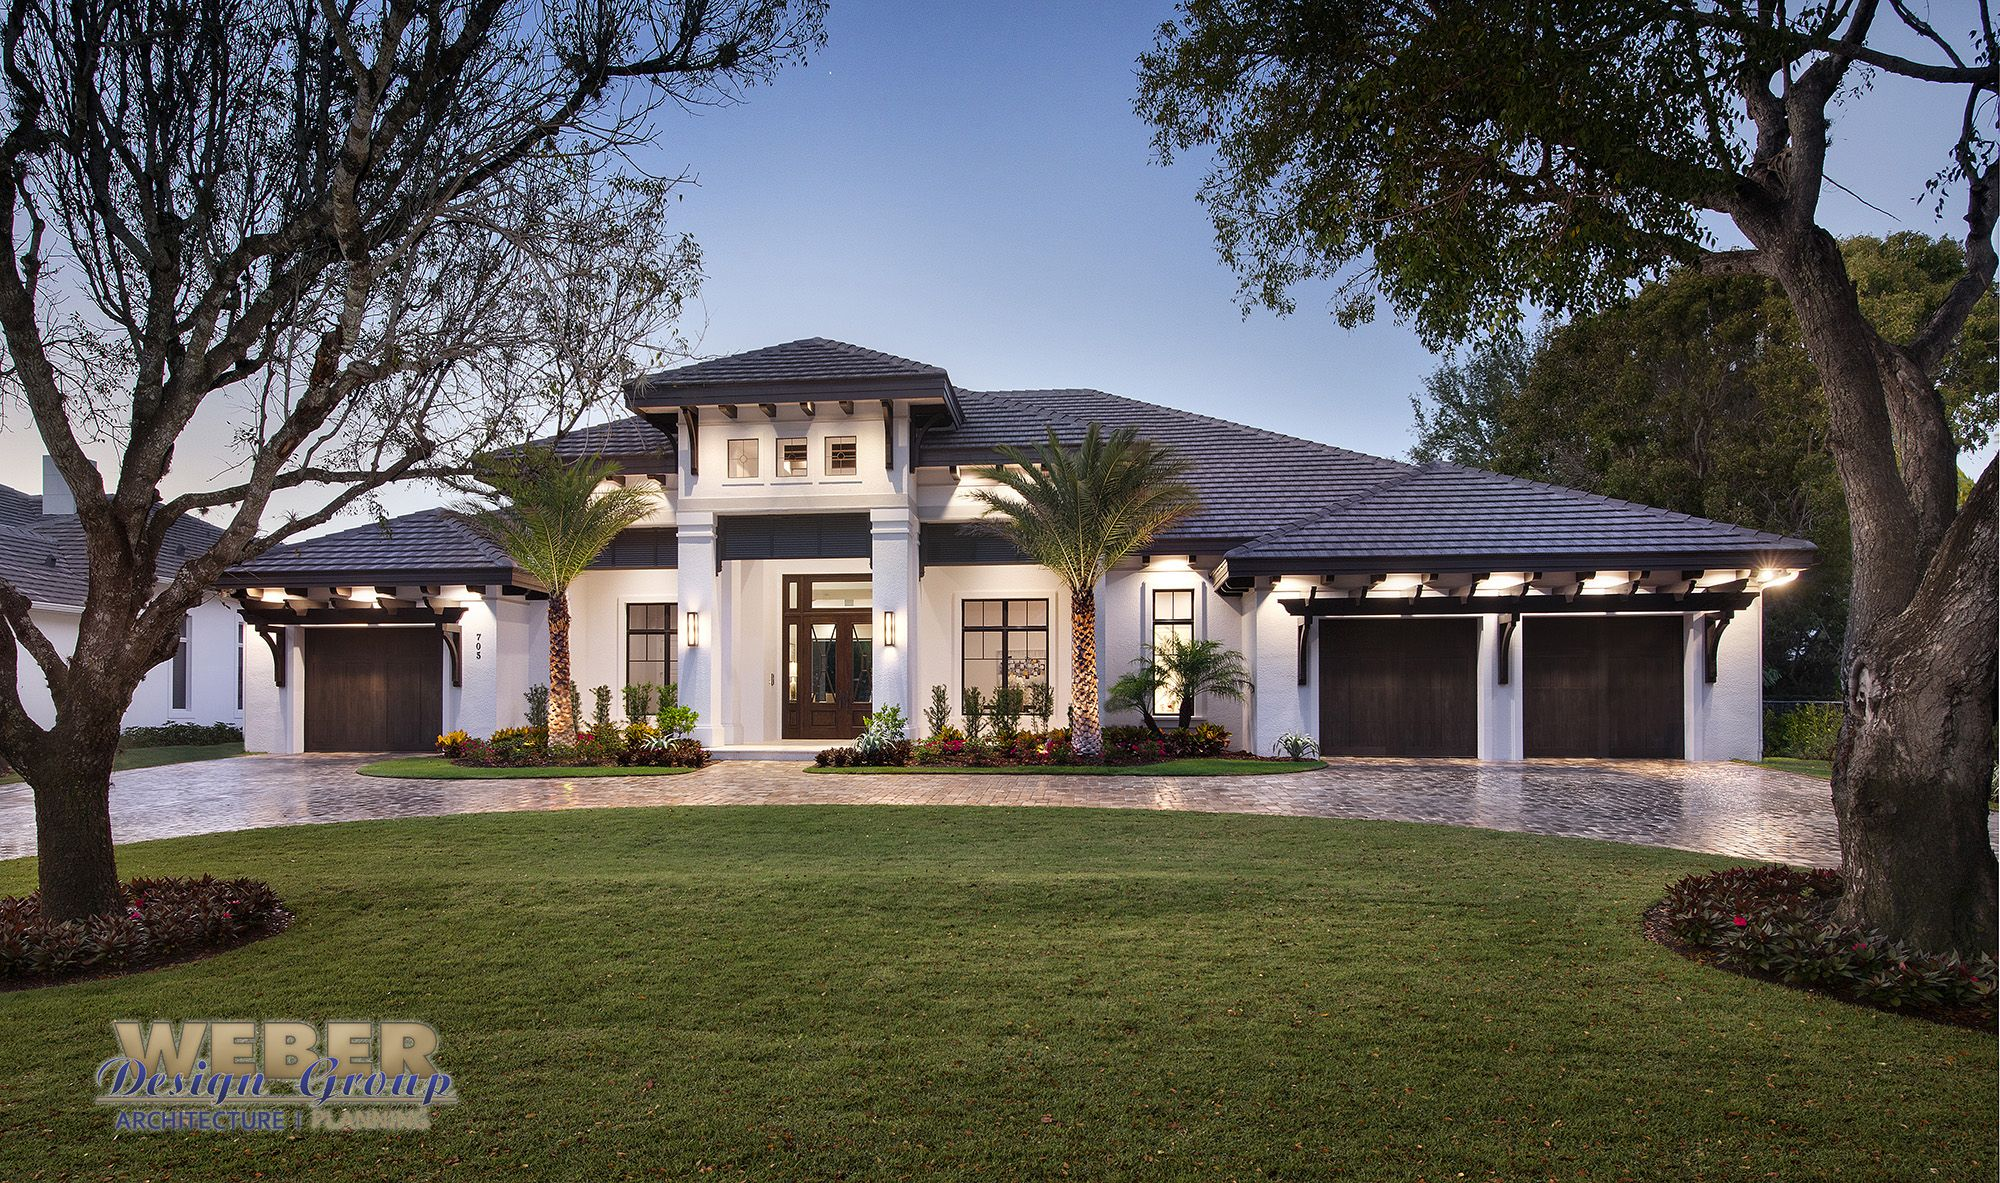 2017 ubmicc com ideas home decor rutenberg home plans picture database - Transitional West Indies Style House Plans By Weber Design Group Inc Browse Other Home